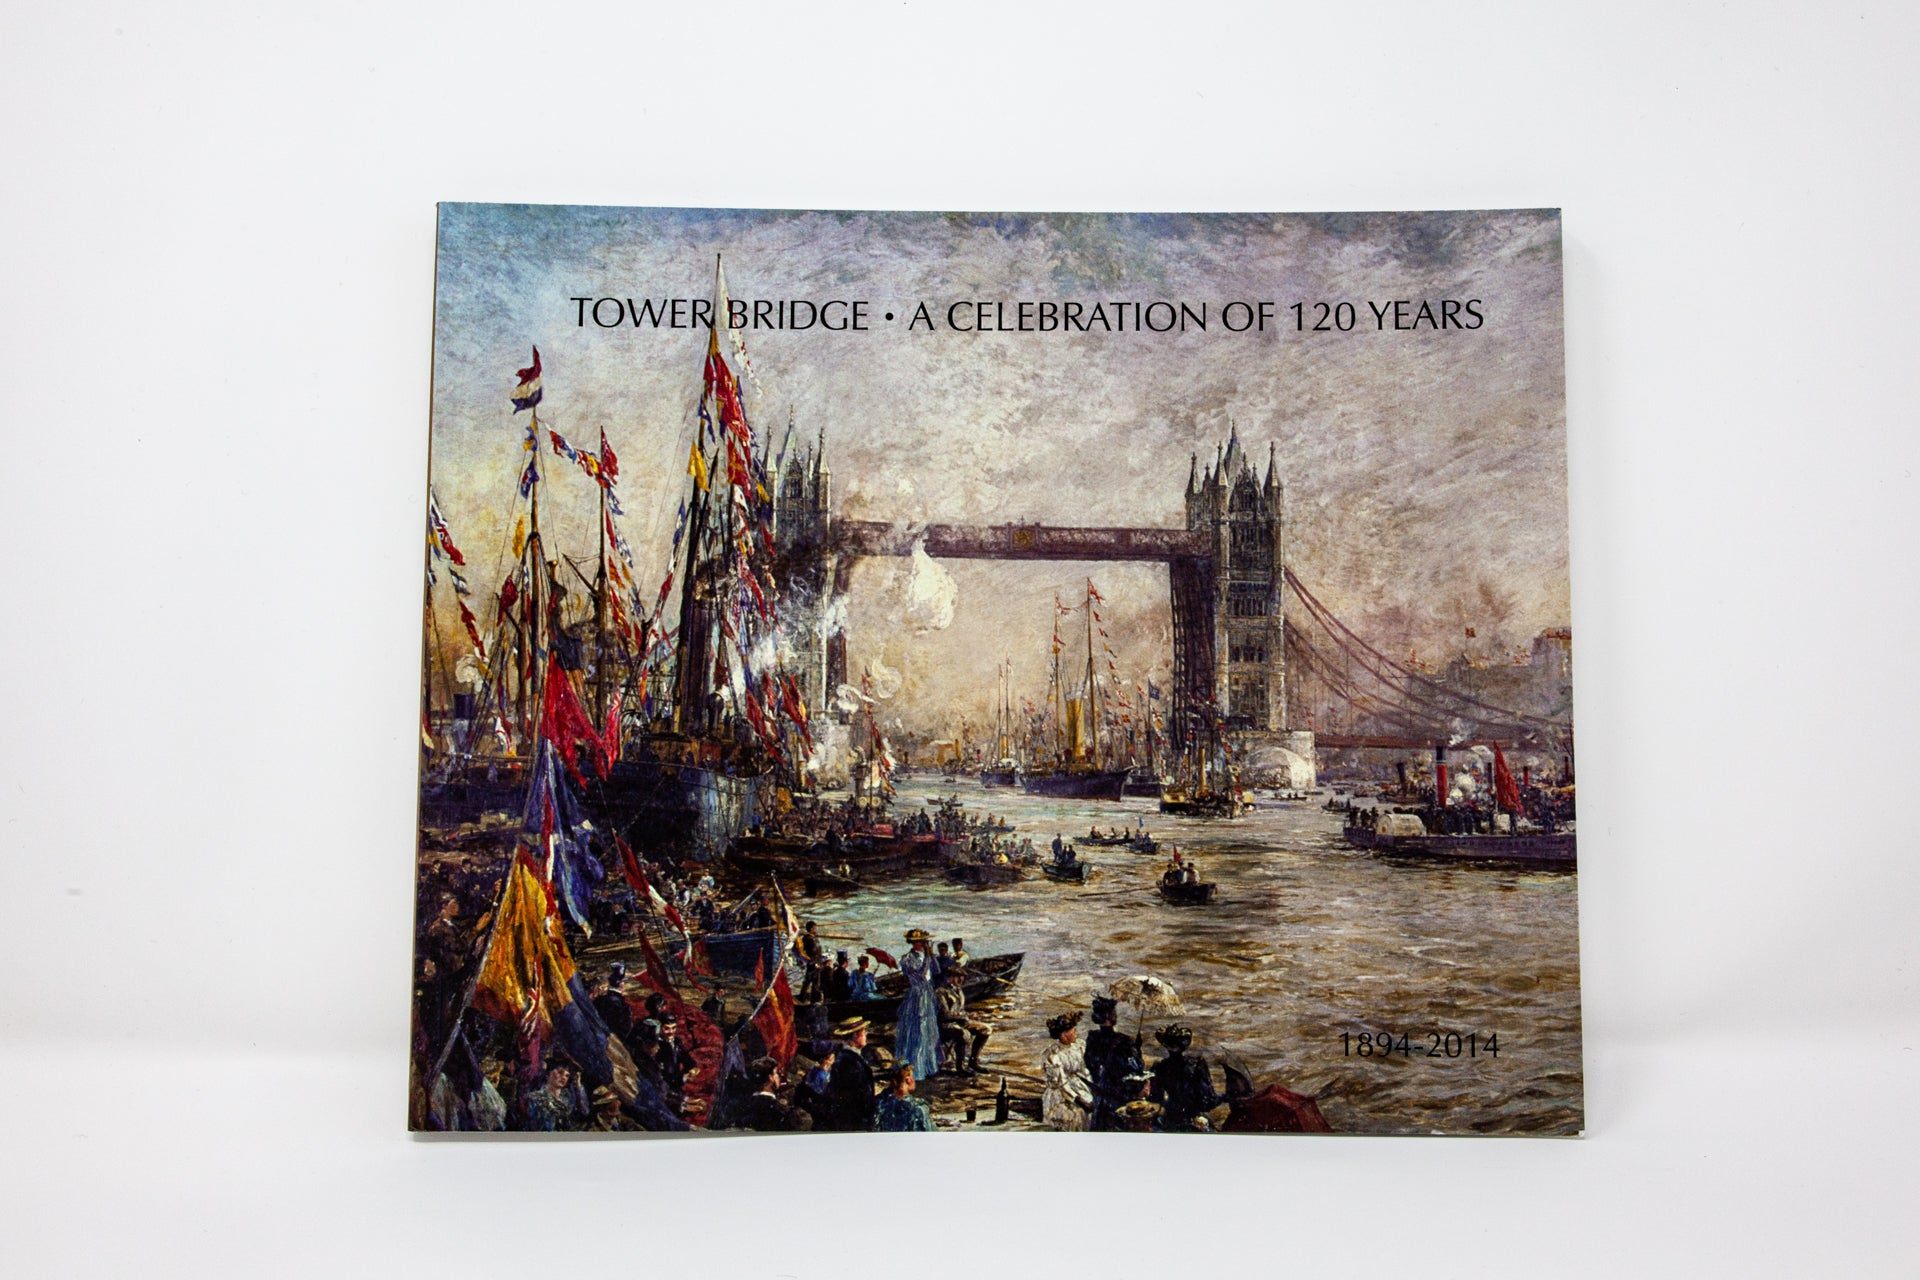 Tower Bridge: A Celebration Of 120 Years